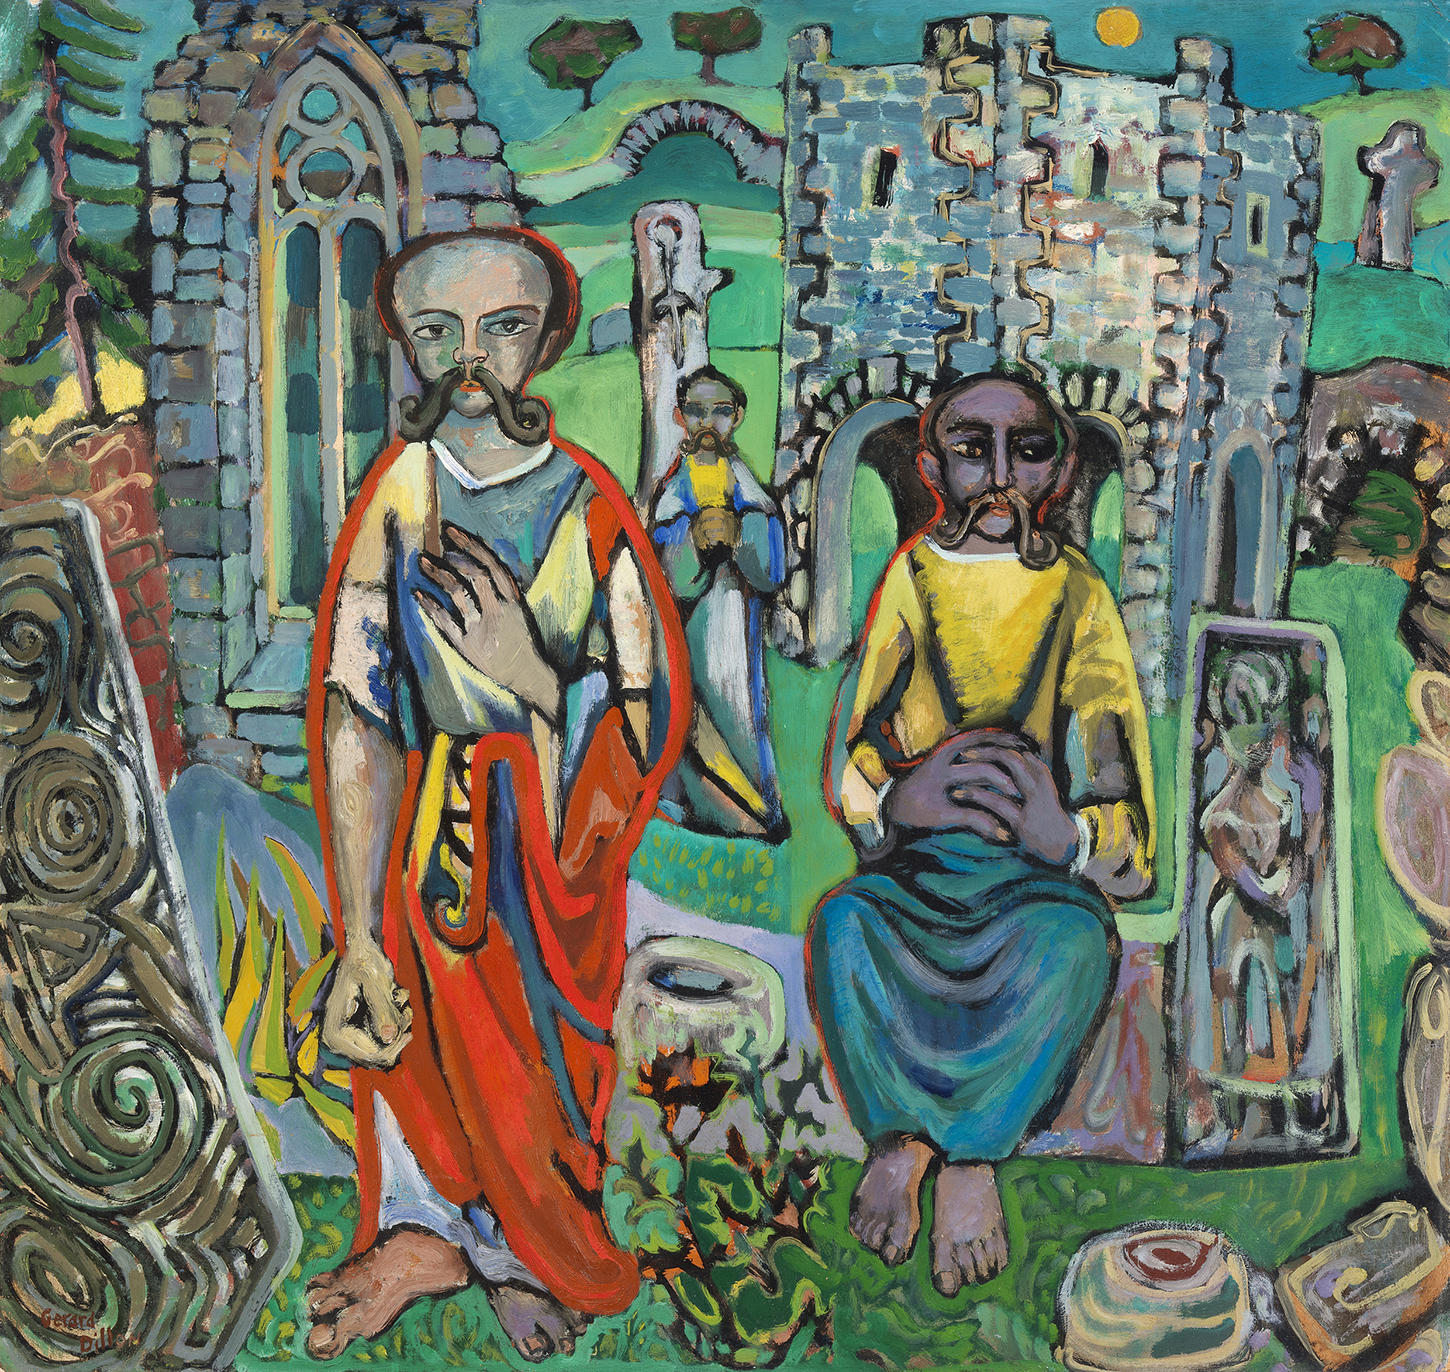 An oil painting showing three figures, two standing and one sitting. They are within the ruins of an abbey, and there is Celtic iconography on some of the stones around them.